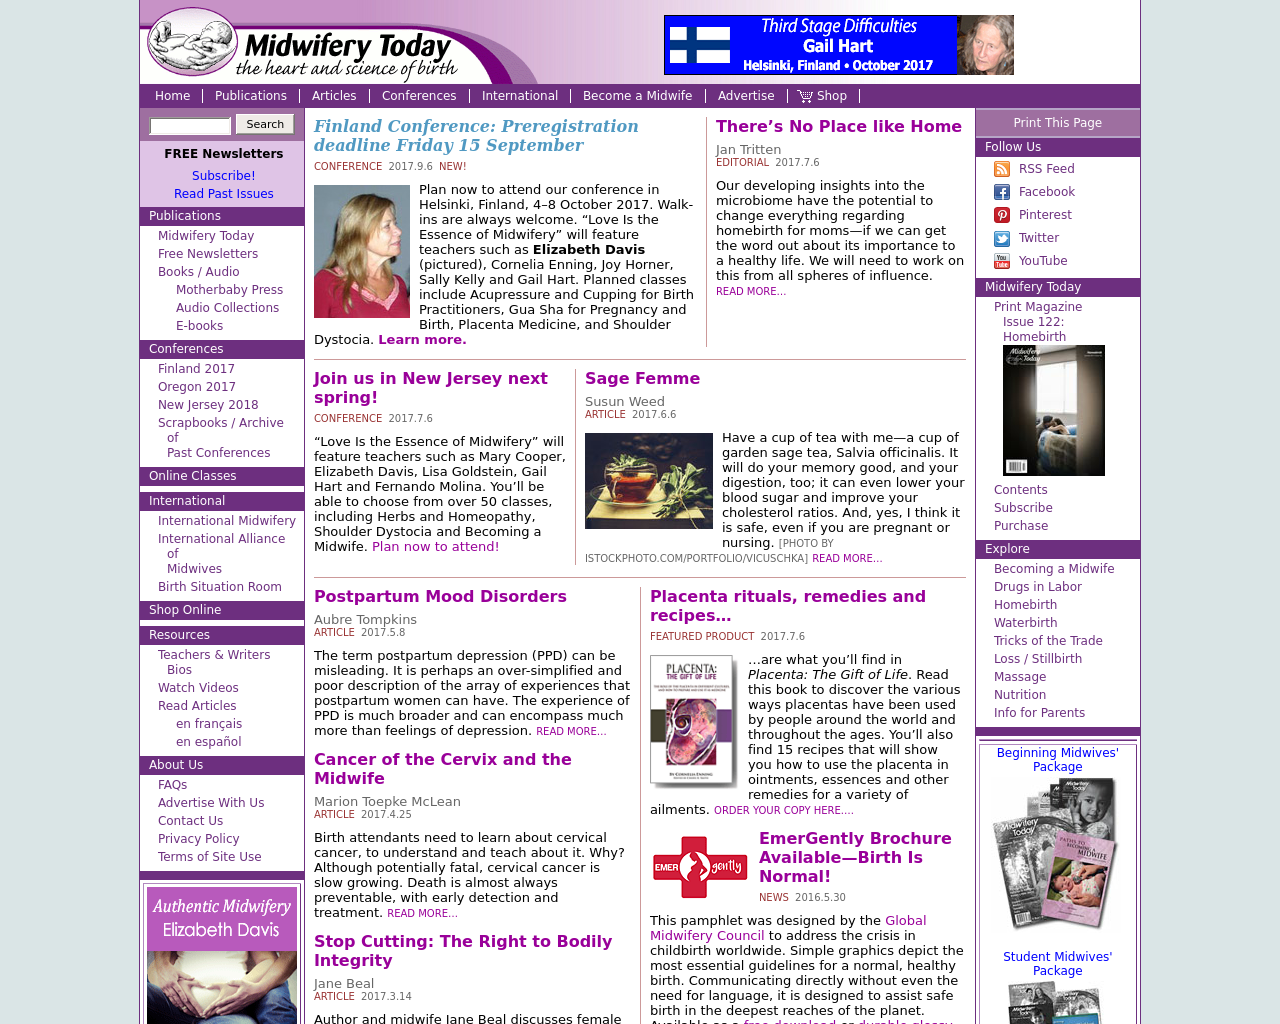 Midwifery-Today-Advertising-Reviews-Pricing